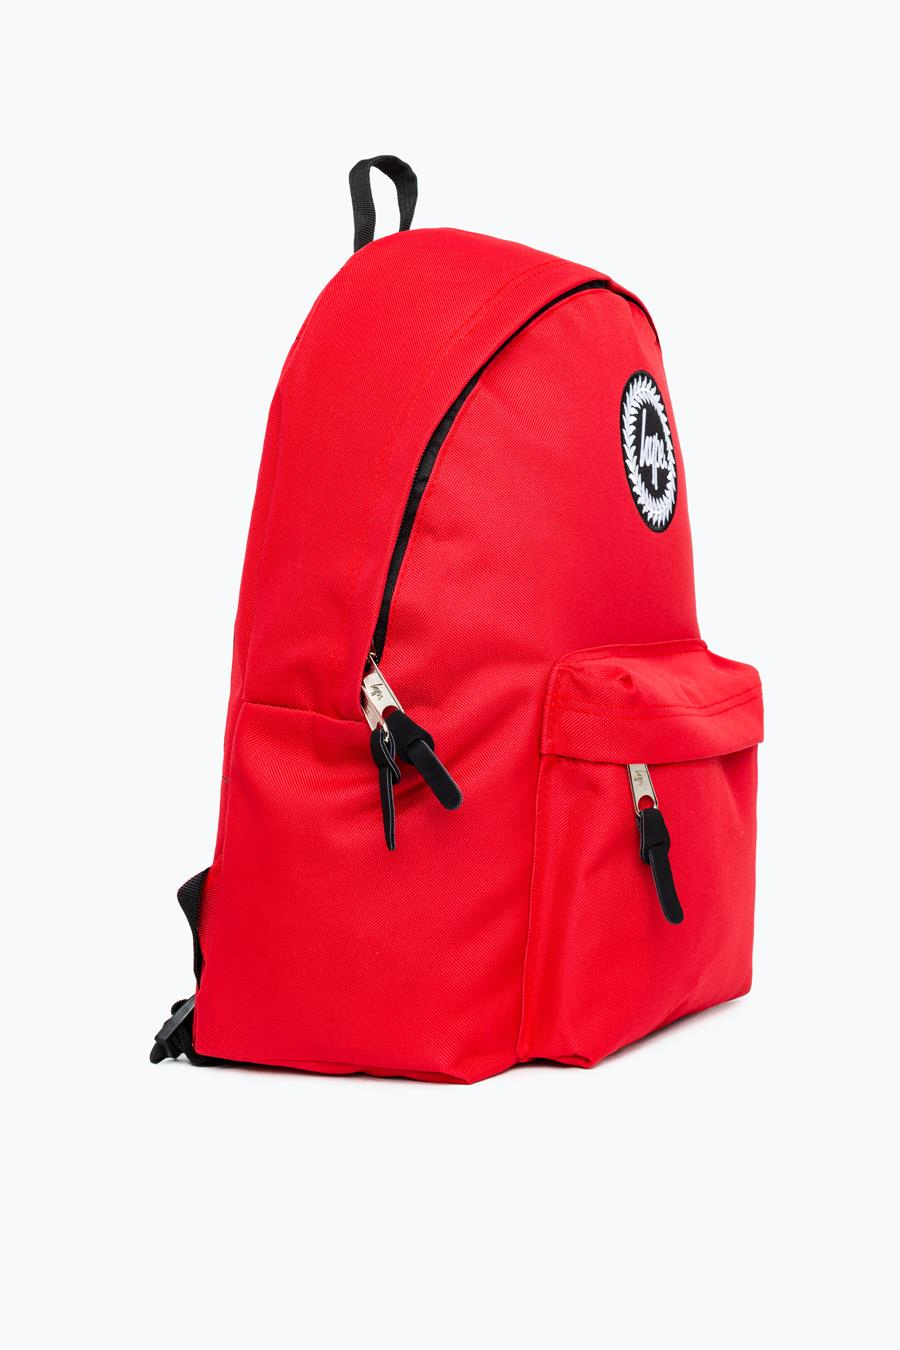 cheapest price biggest discount high quality HYPE RED BADGE BACKPACK | Justhype ltd